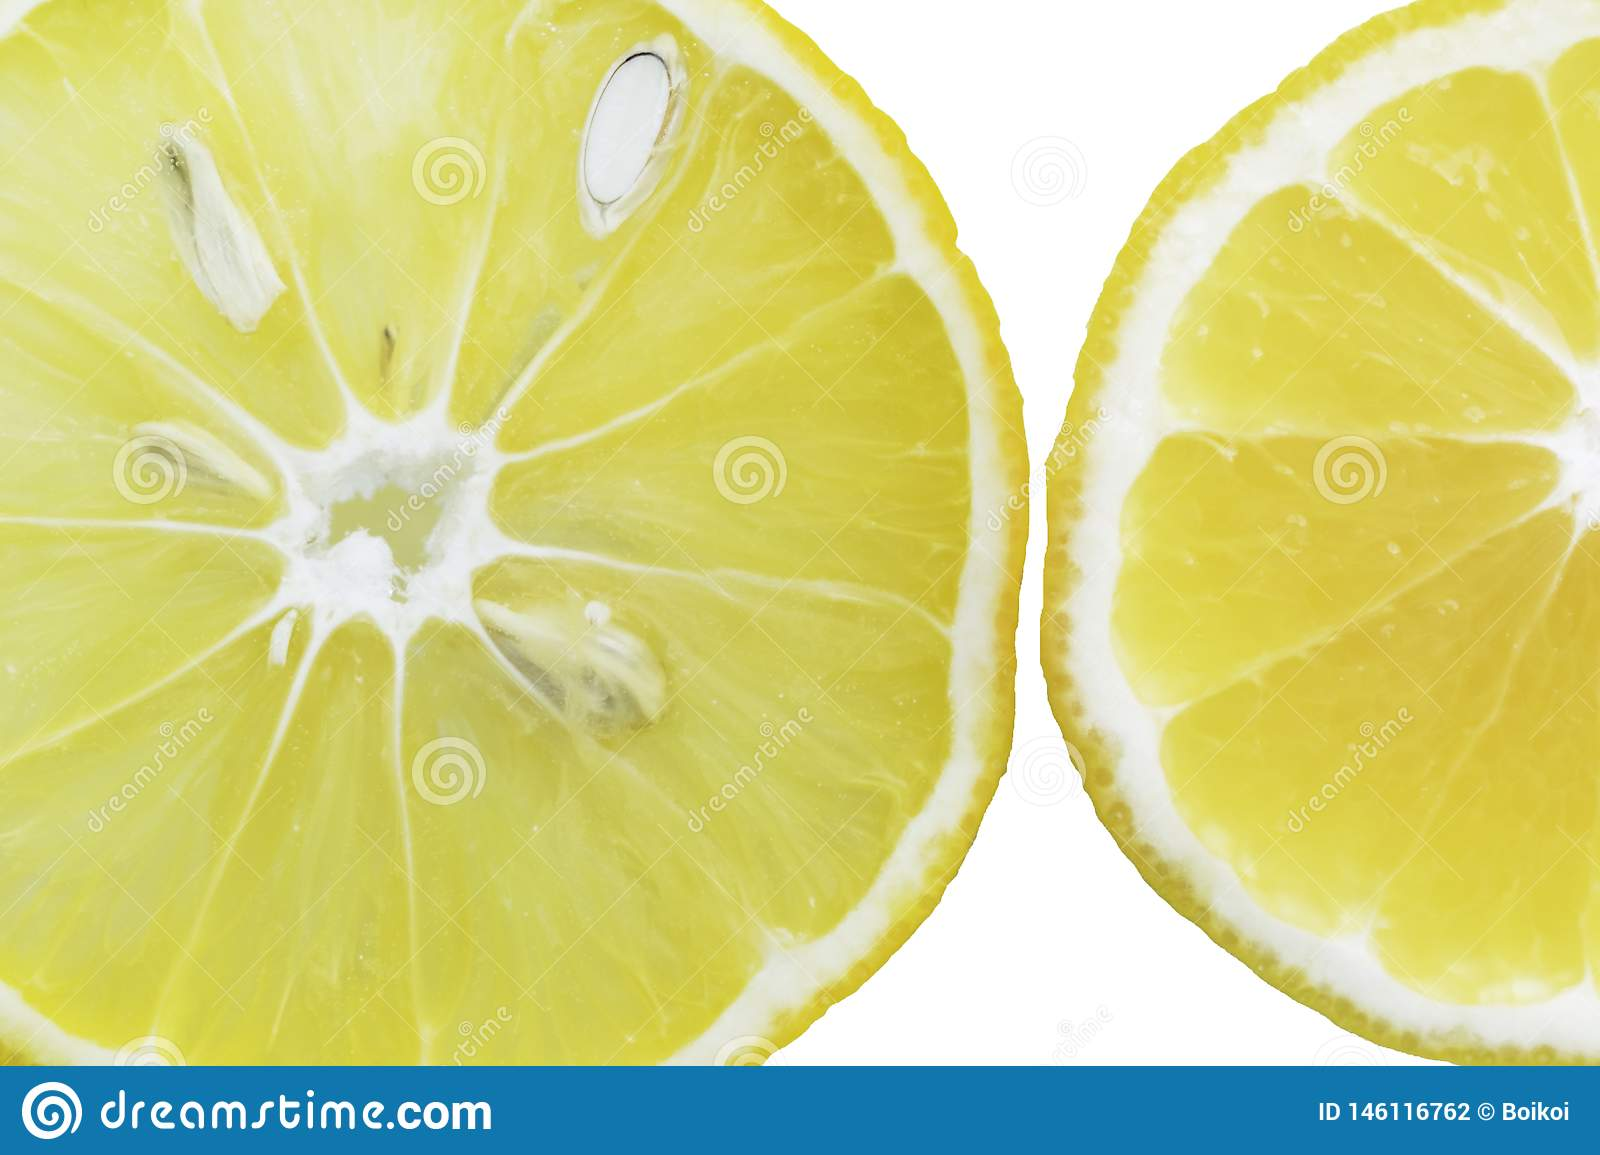 Lemon slices in the water, close-up, top view